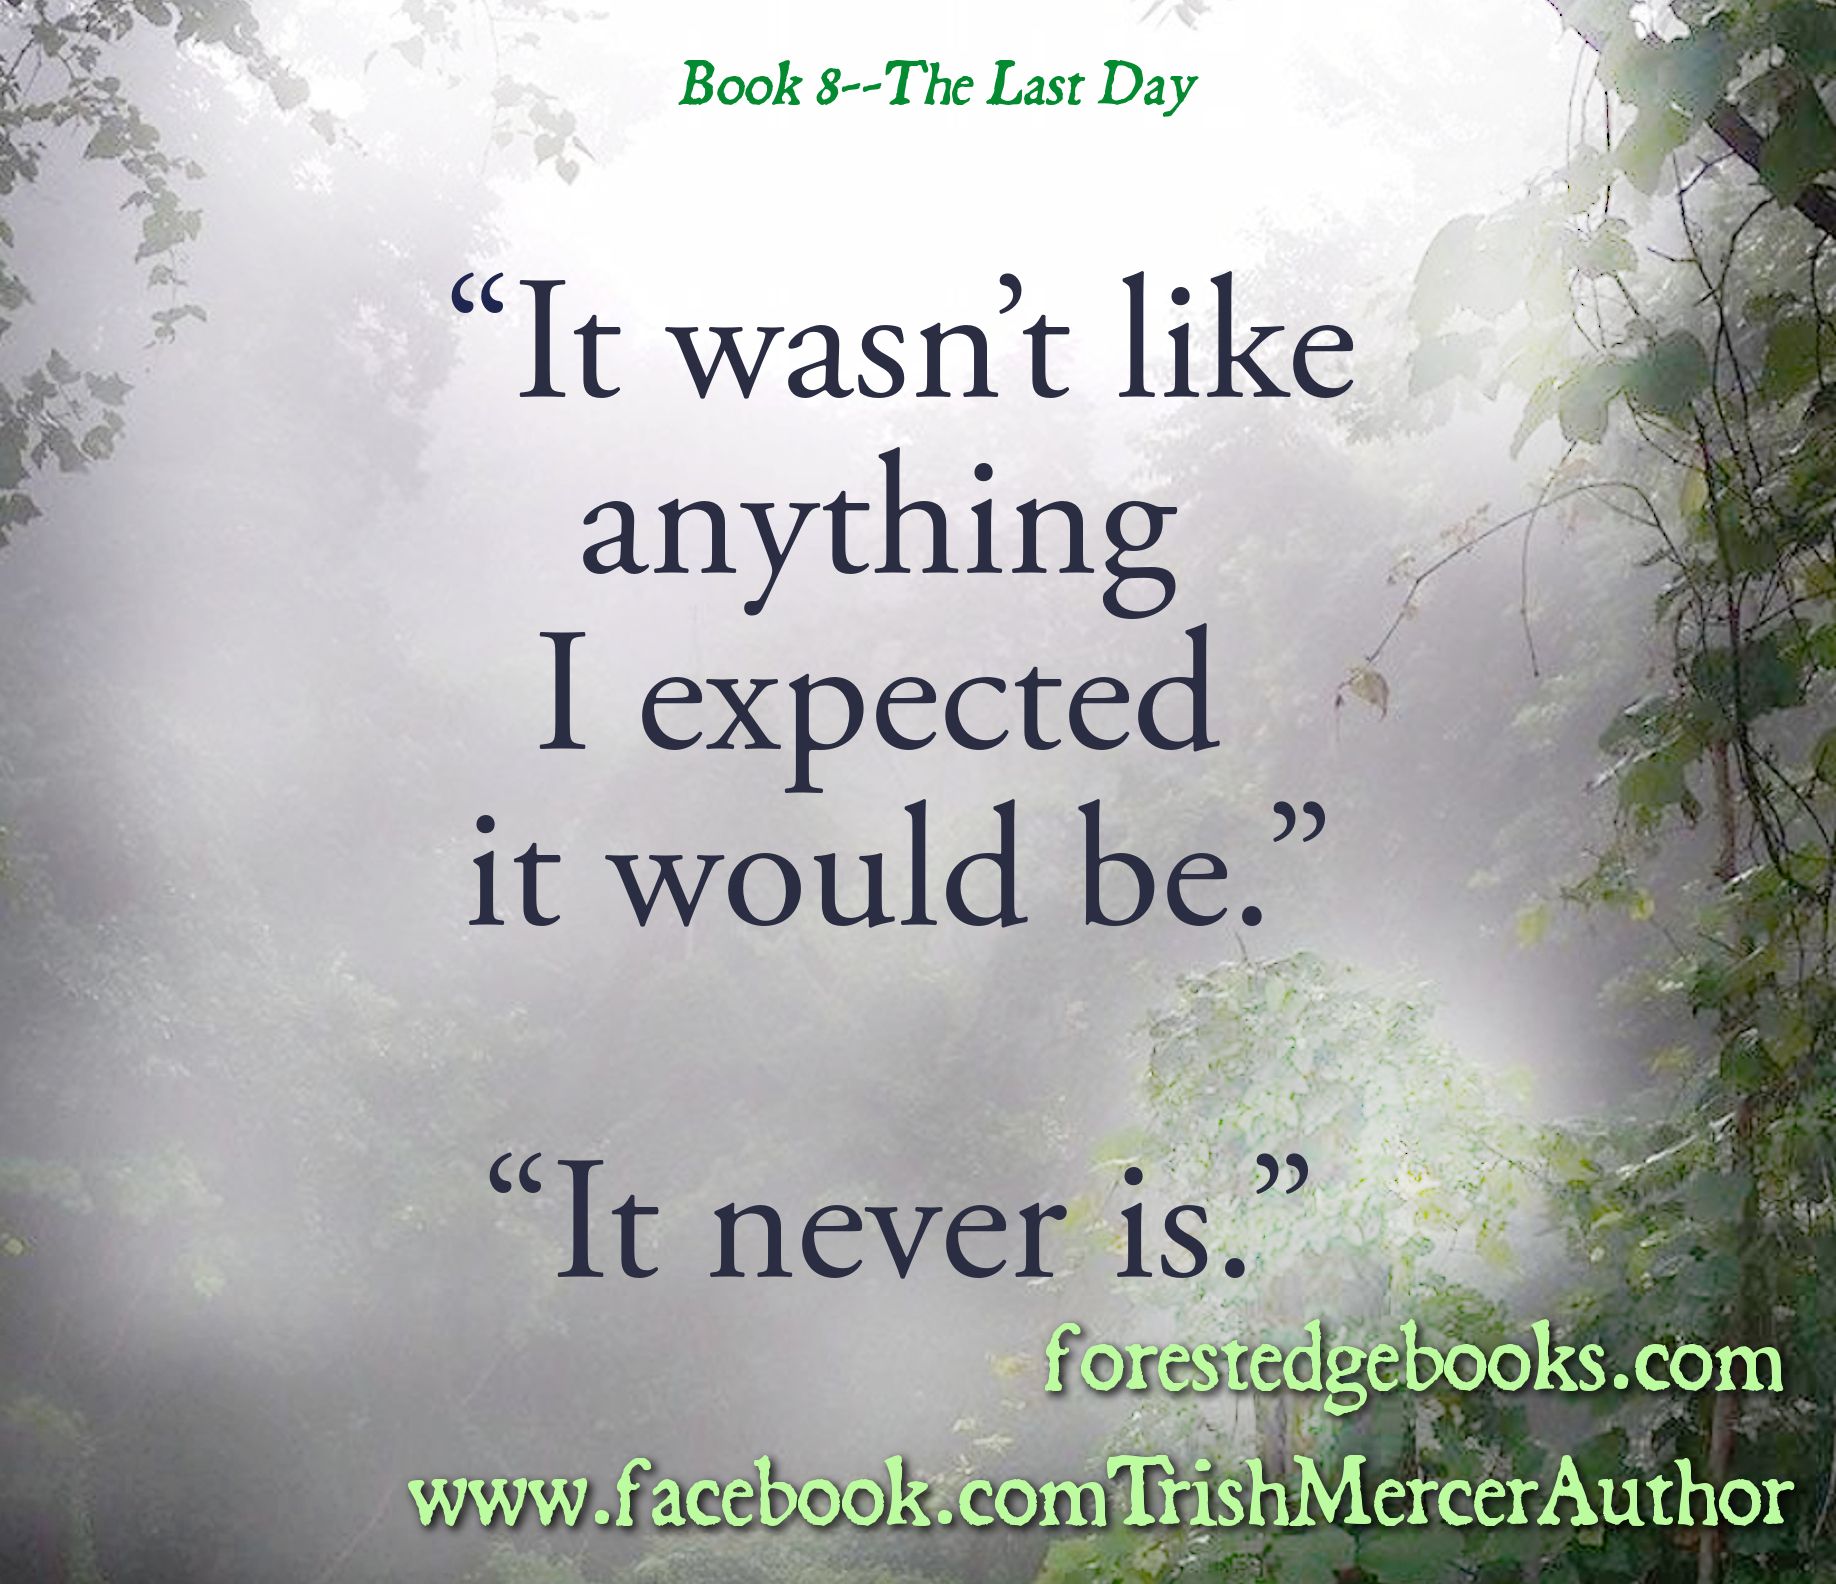 Not what I expected BOOK 8 teaser HORIZONTAL